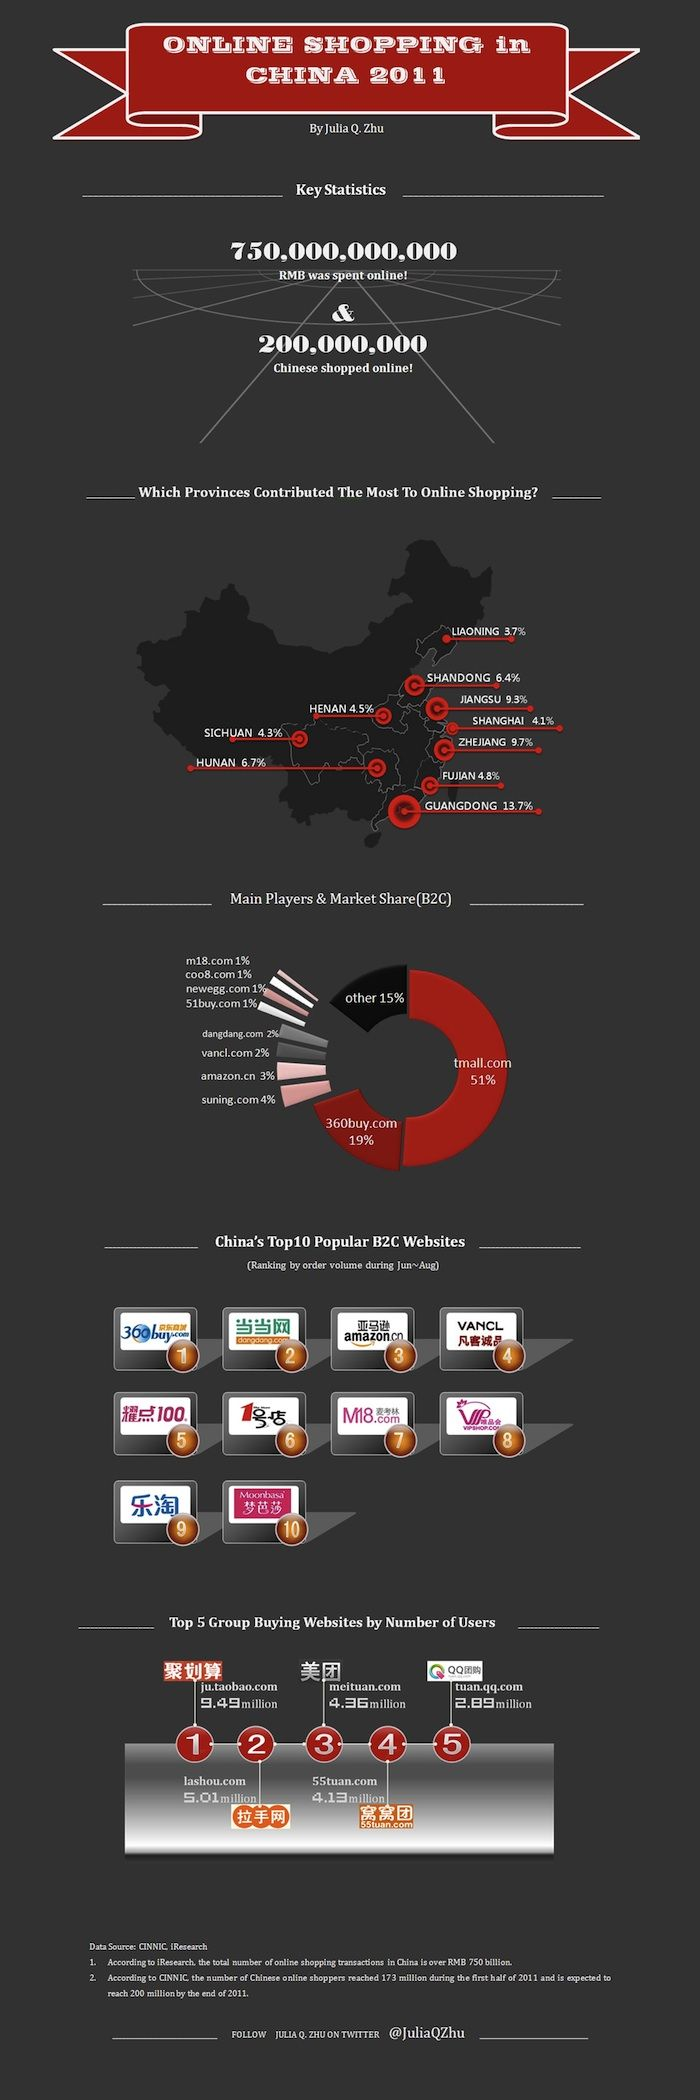 Online shopping in China (2011) infographic